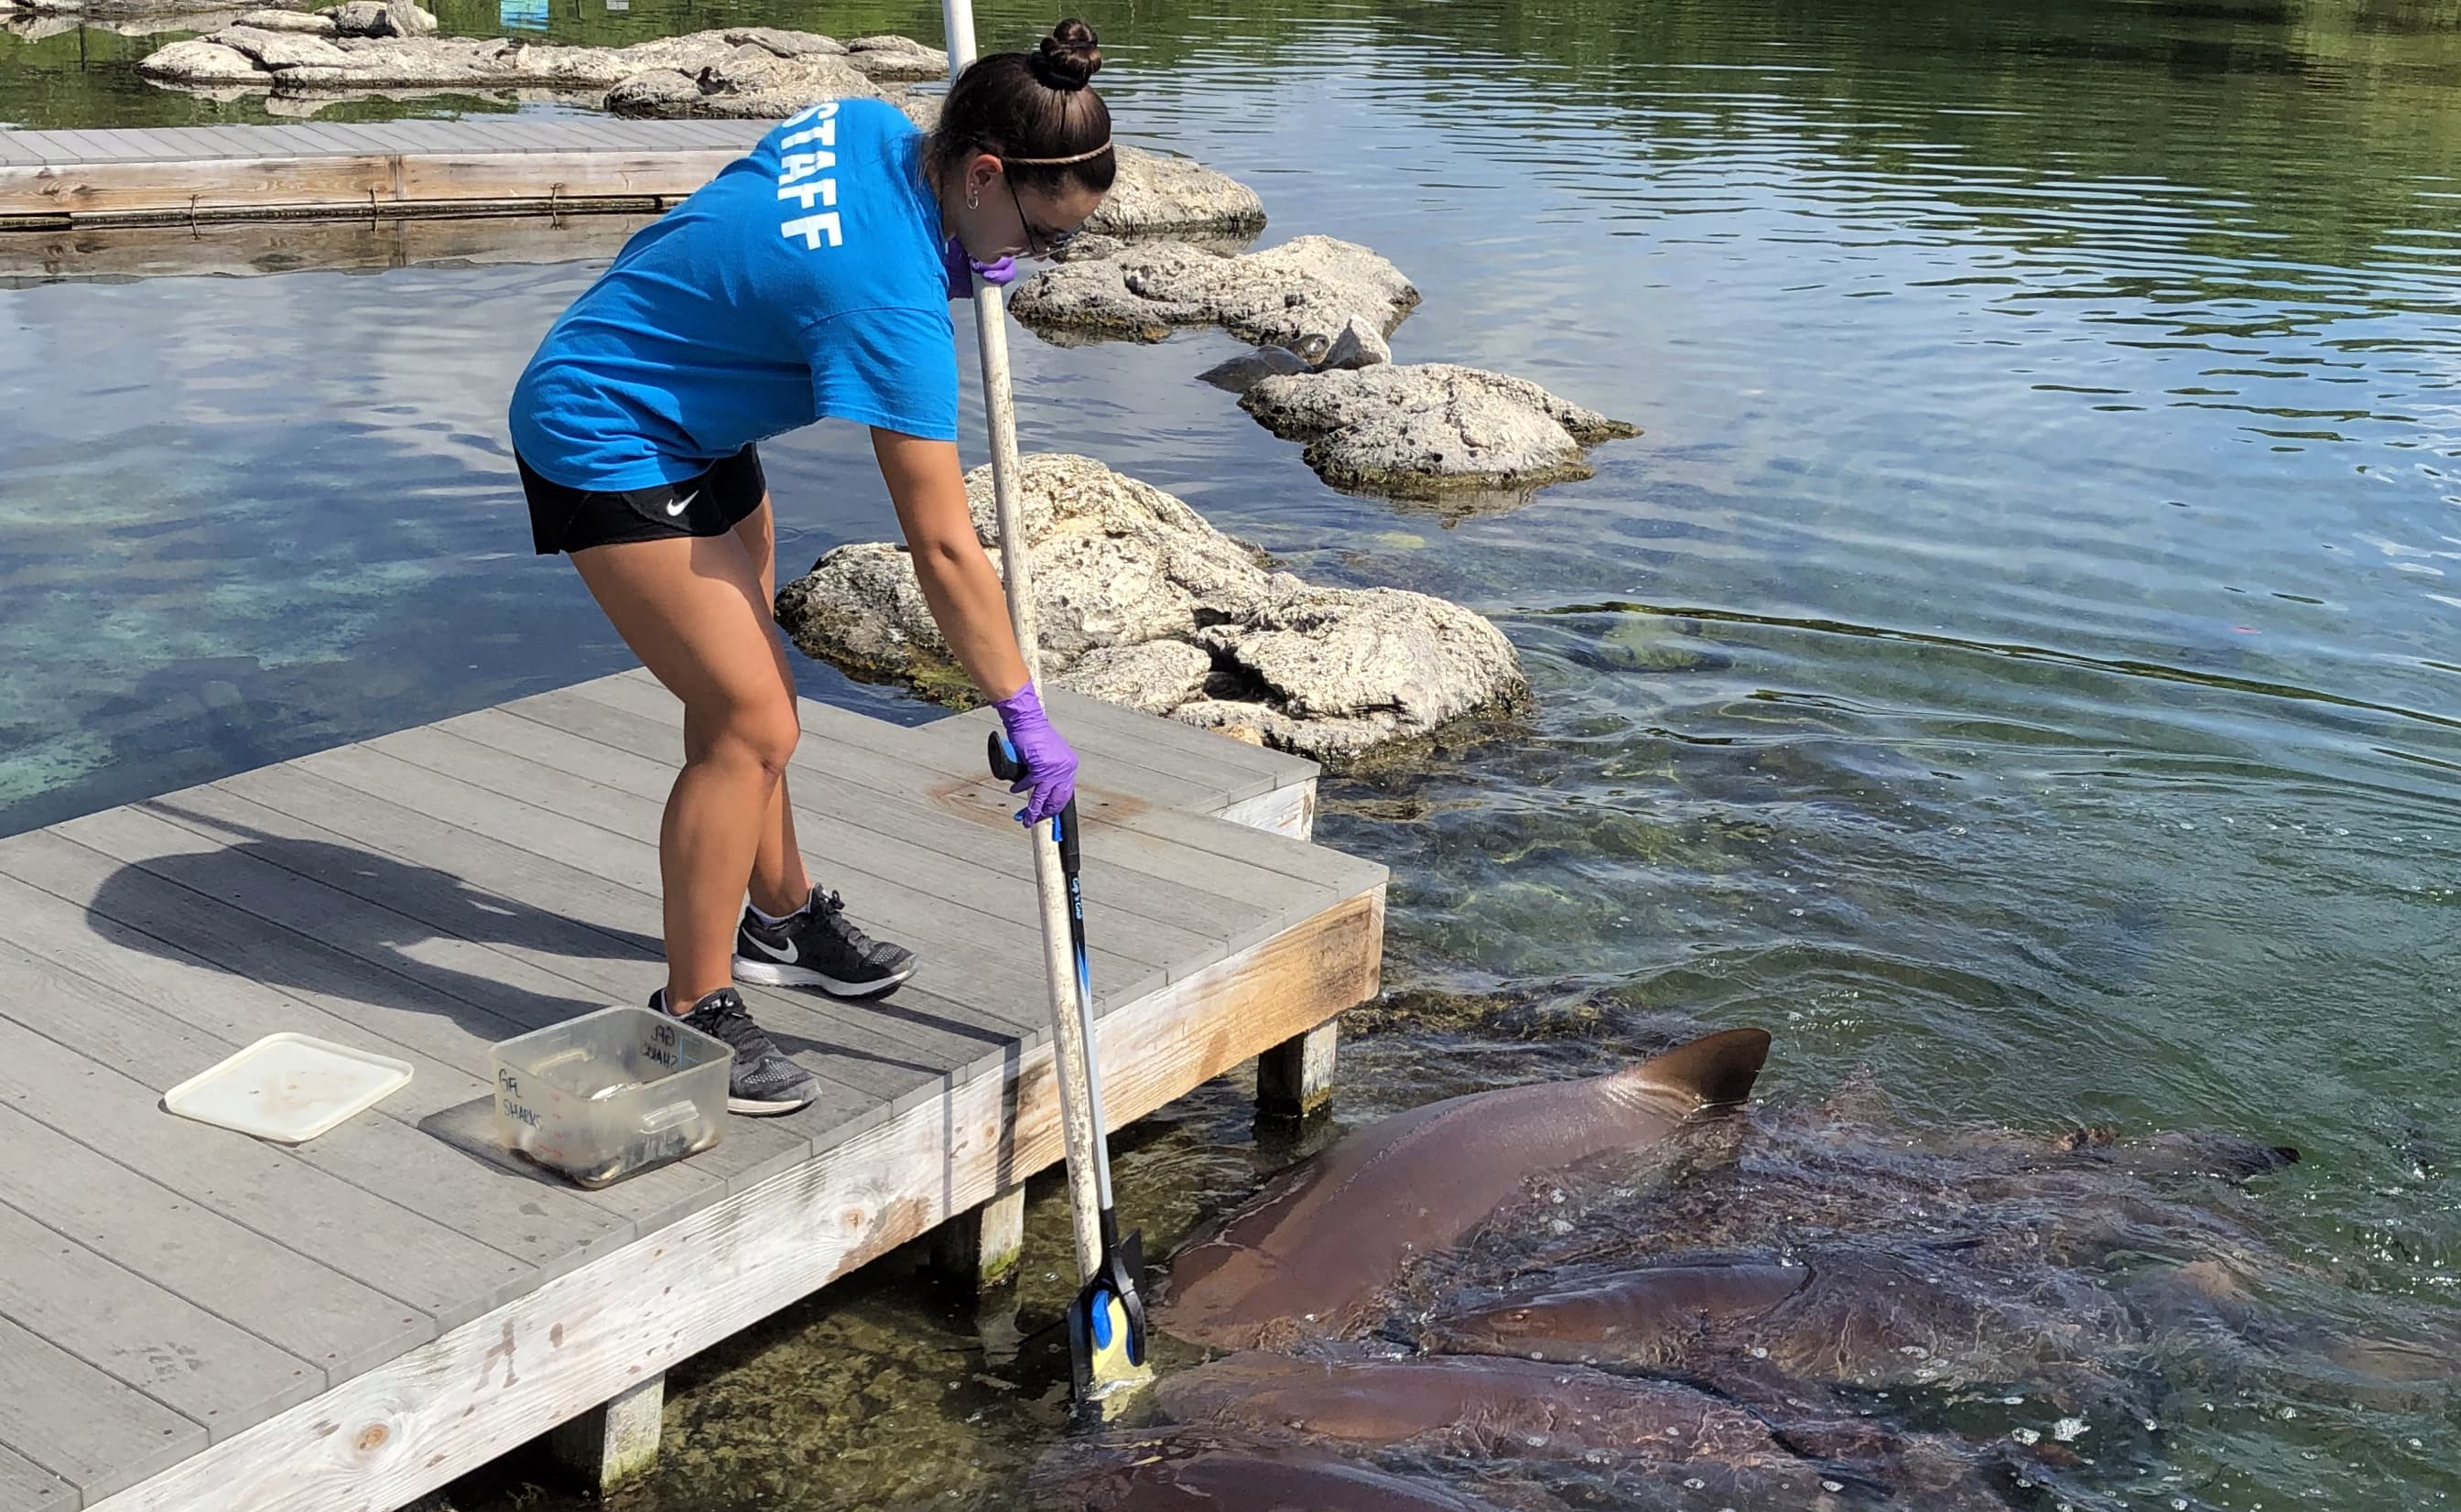 UNH marine, estuarine and freshwater biology major Marisa Gazzola cares for marine animals during her summer internship